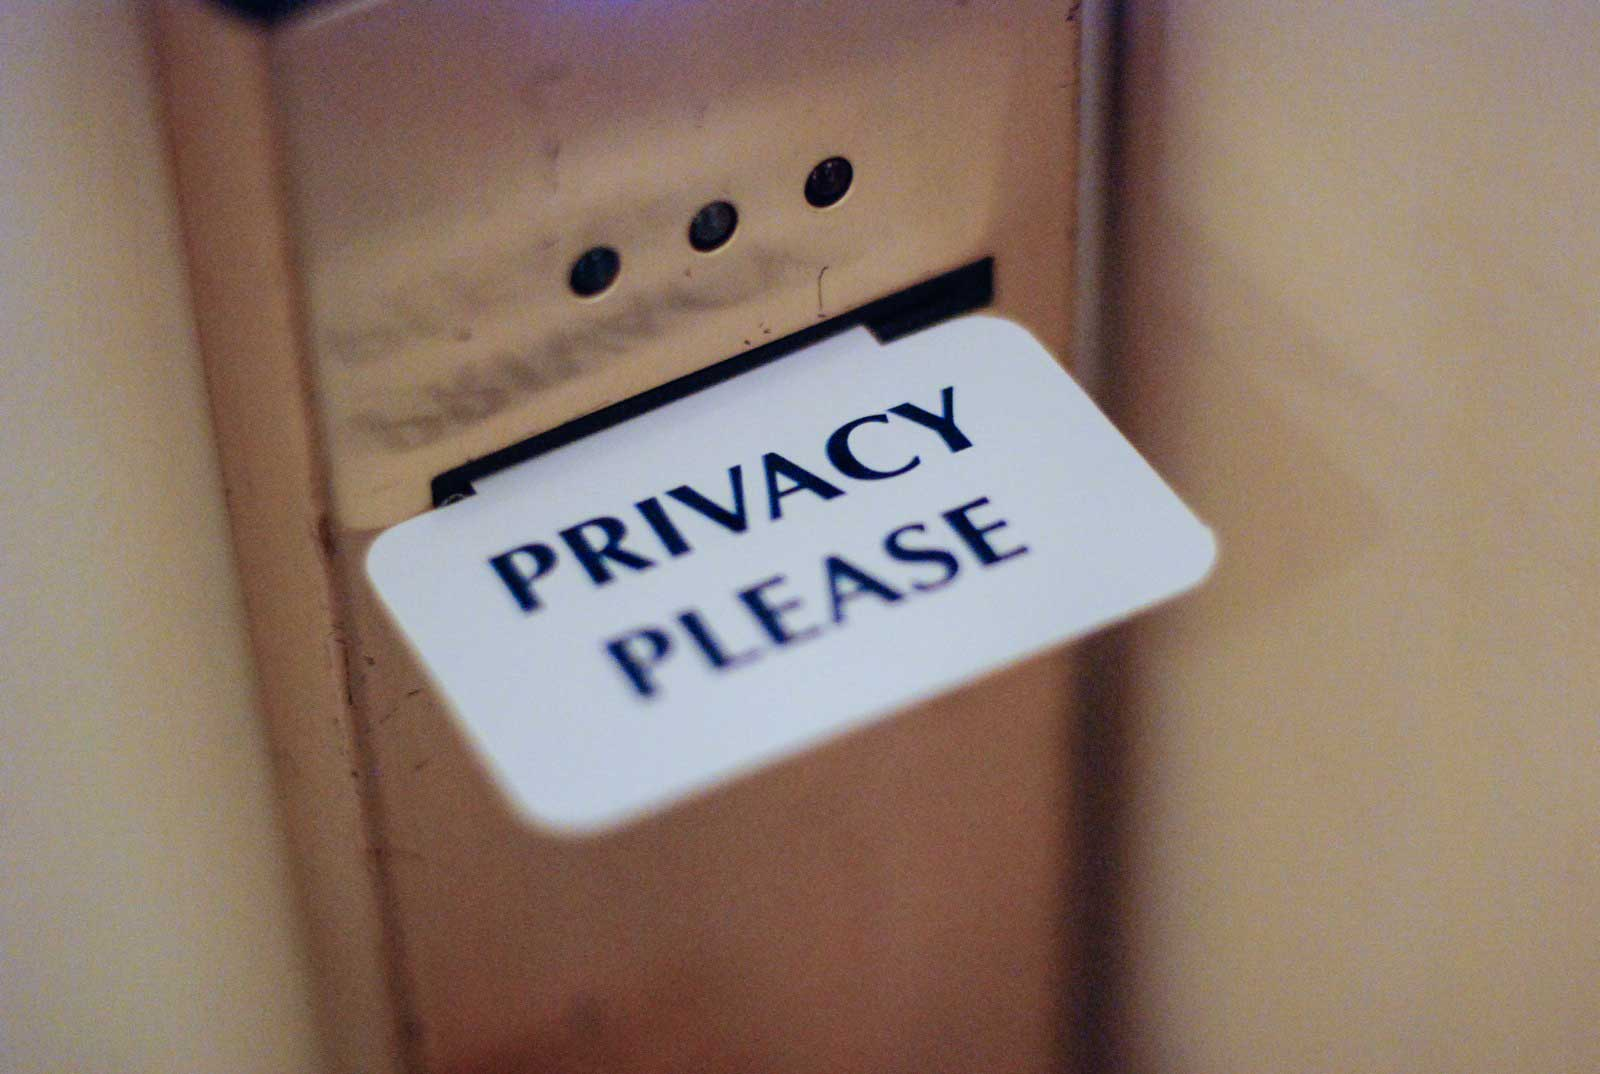 Privacy please (photo credit: Josh Hallett, cc-by)